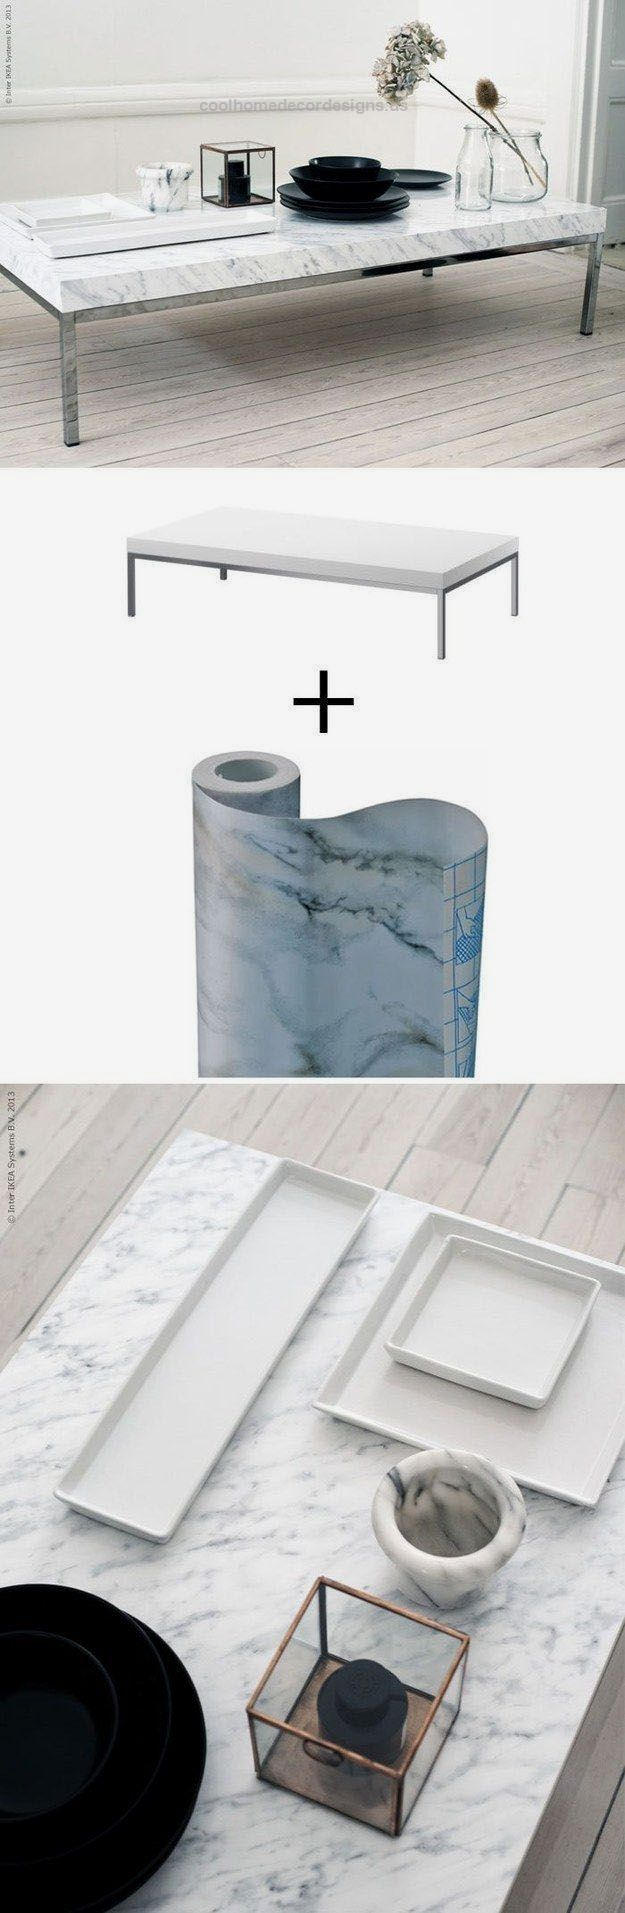 16 DIY Coffee Table Projects – DIY Joy  DIY Home Decor On a Budget | Easy Furniture Projects | Faux Marble DIY Coffee Table | DIY Projects and Crafts by DIY JOY  http://www.coolhomedecordesigns.us/2017/06/19/16-diy-coffee-table-projects-diy-joy/